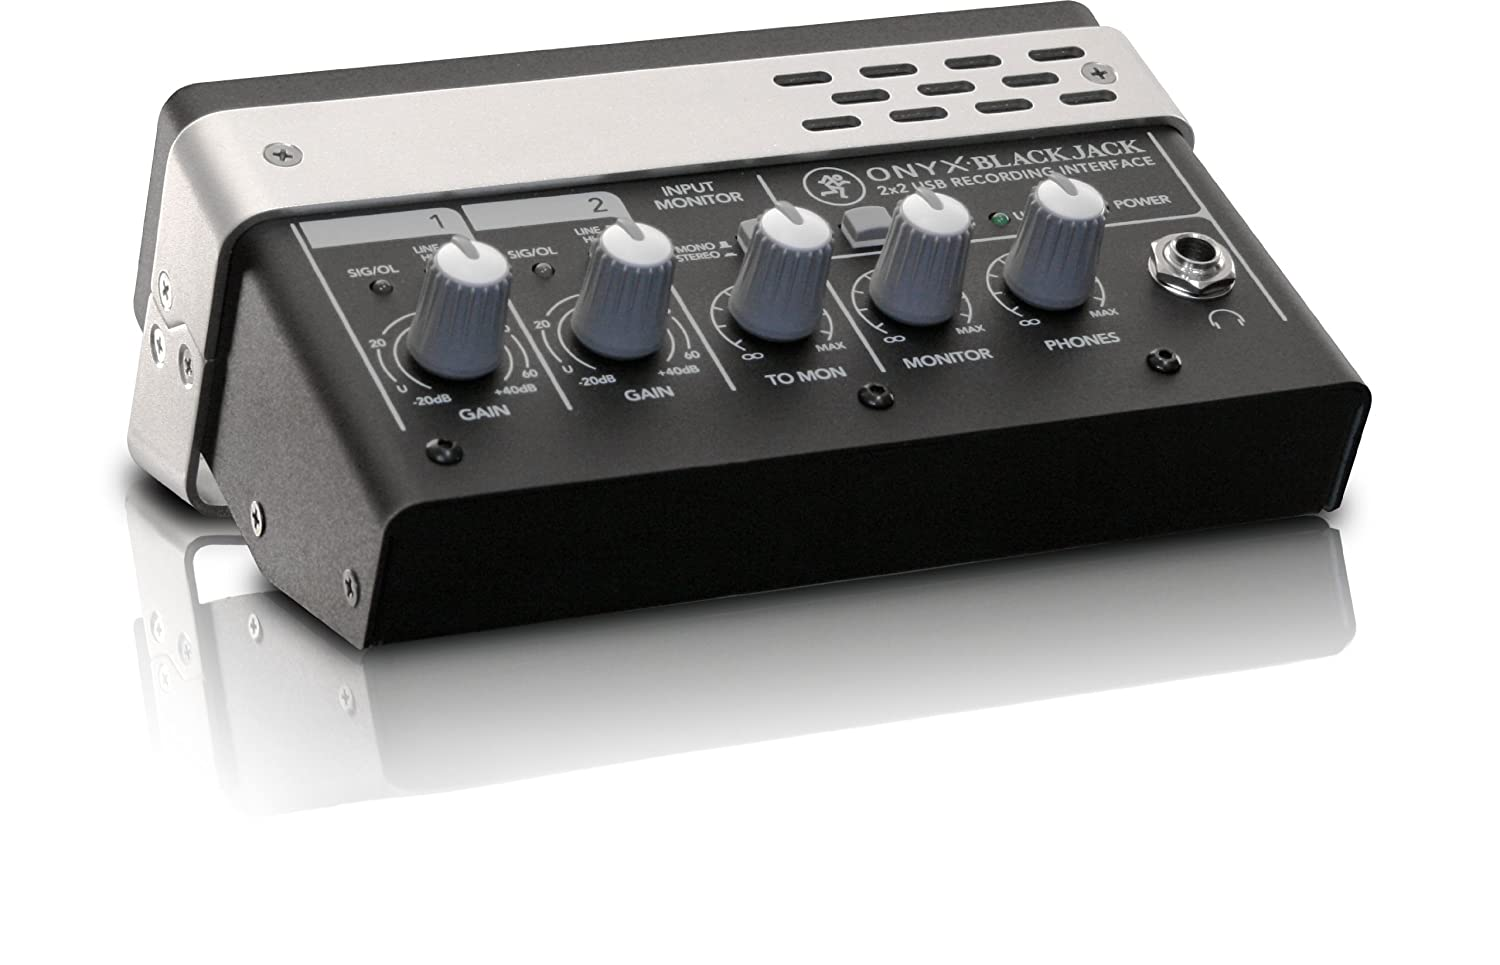 Mackie Onyx Blackjack Premium 2x2 USB Recording Interface with Tracktion 3 Music Production Software